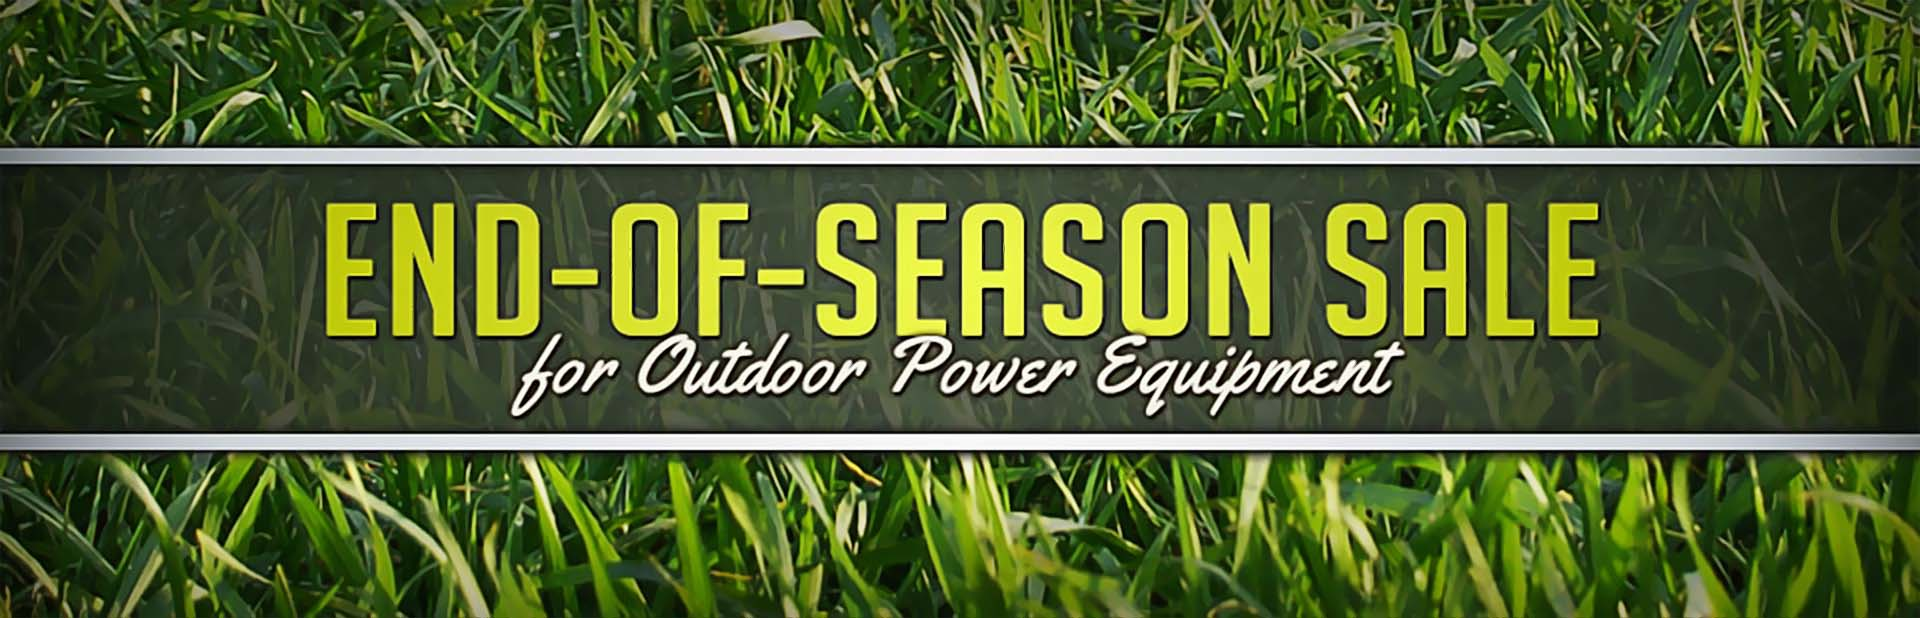 End-of-Season Sale for Outdoor Power Equipment: Contact us for details.